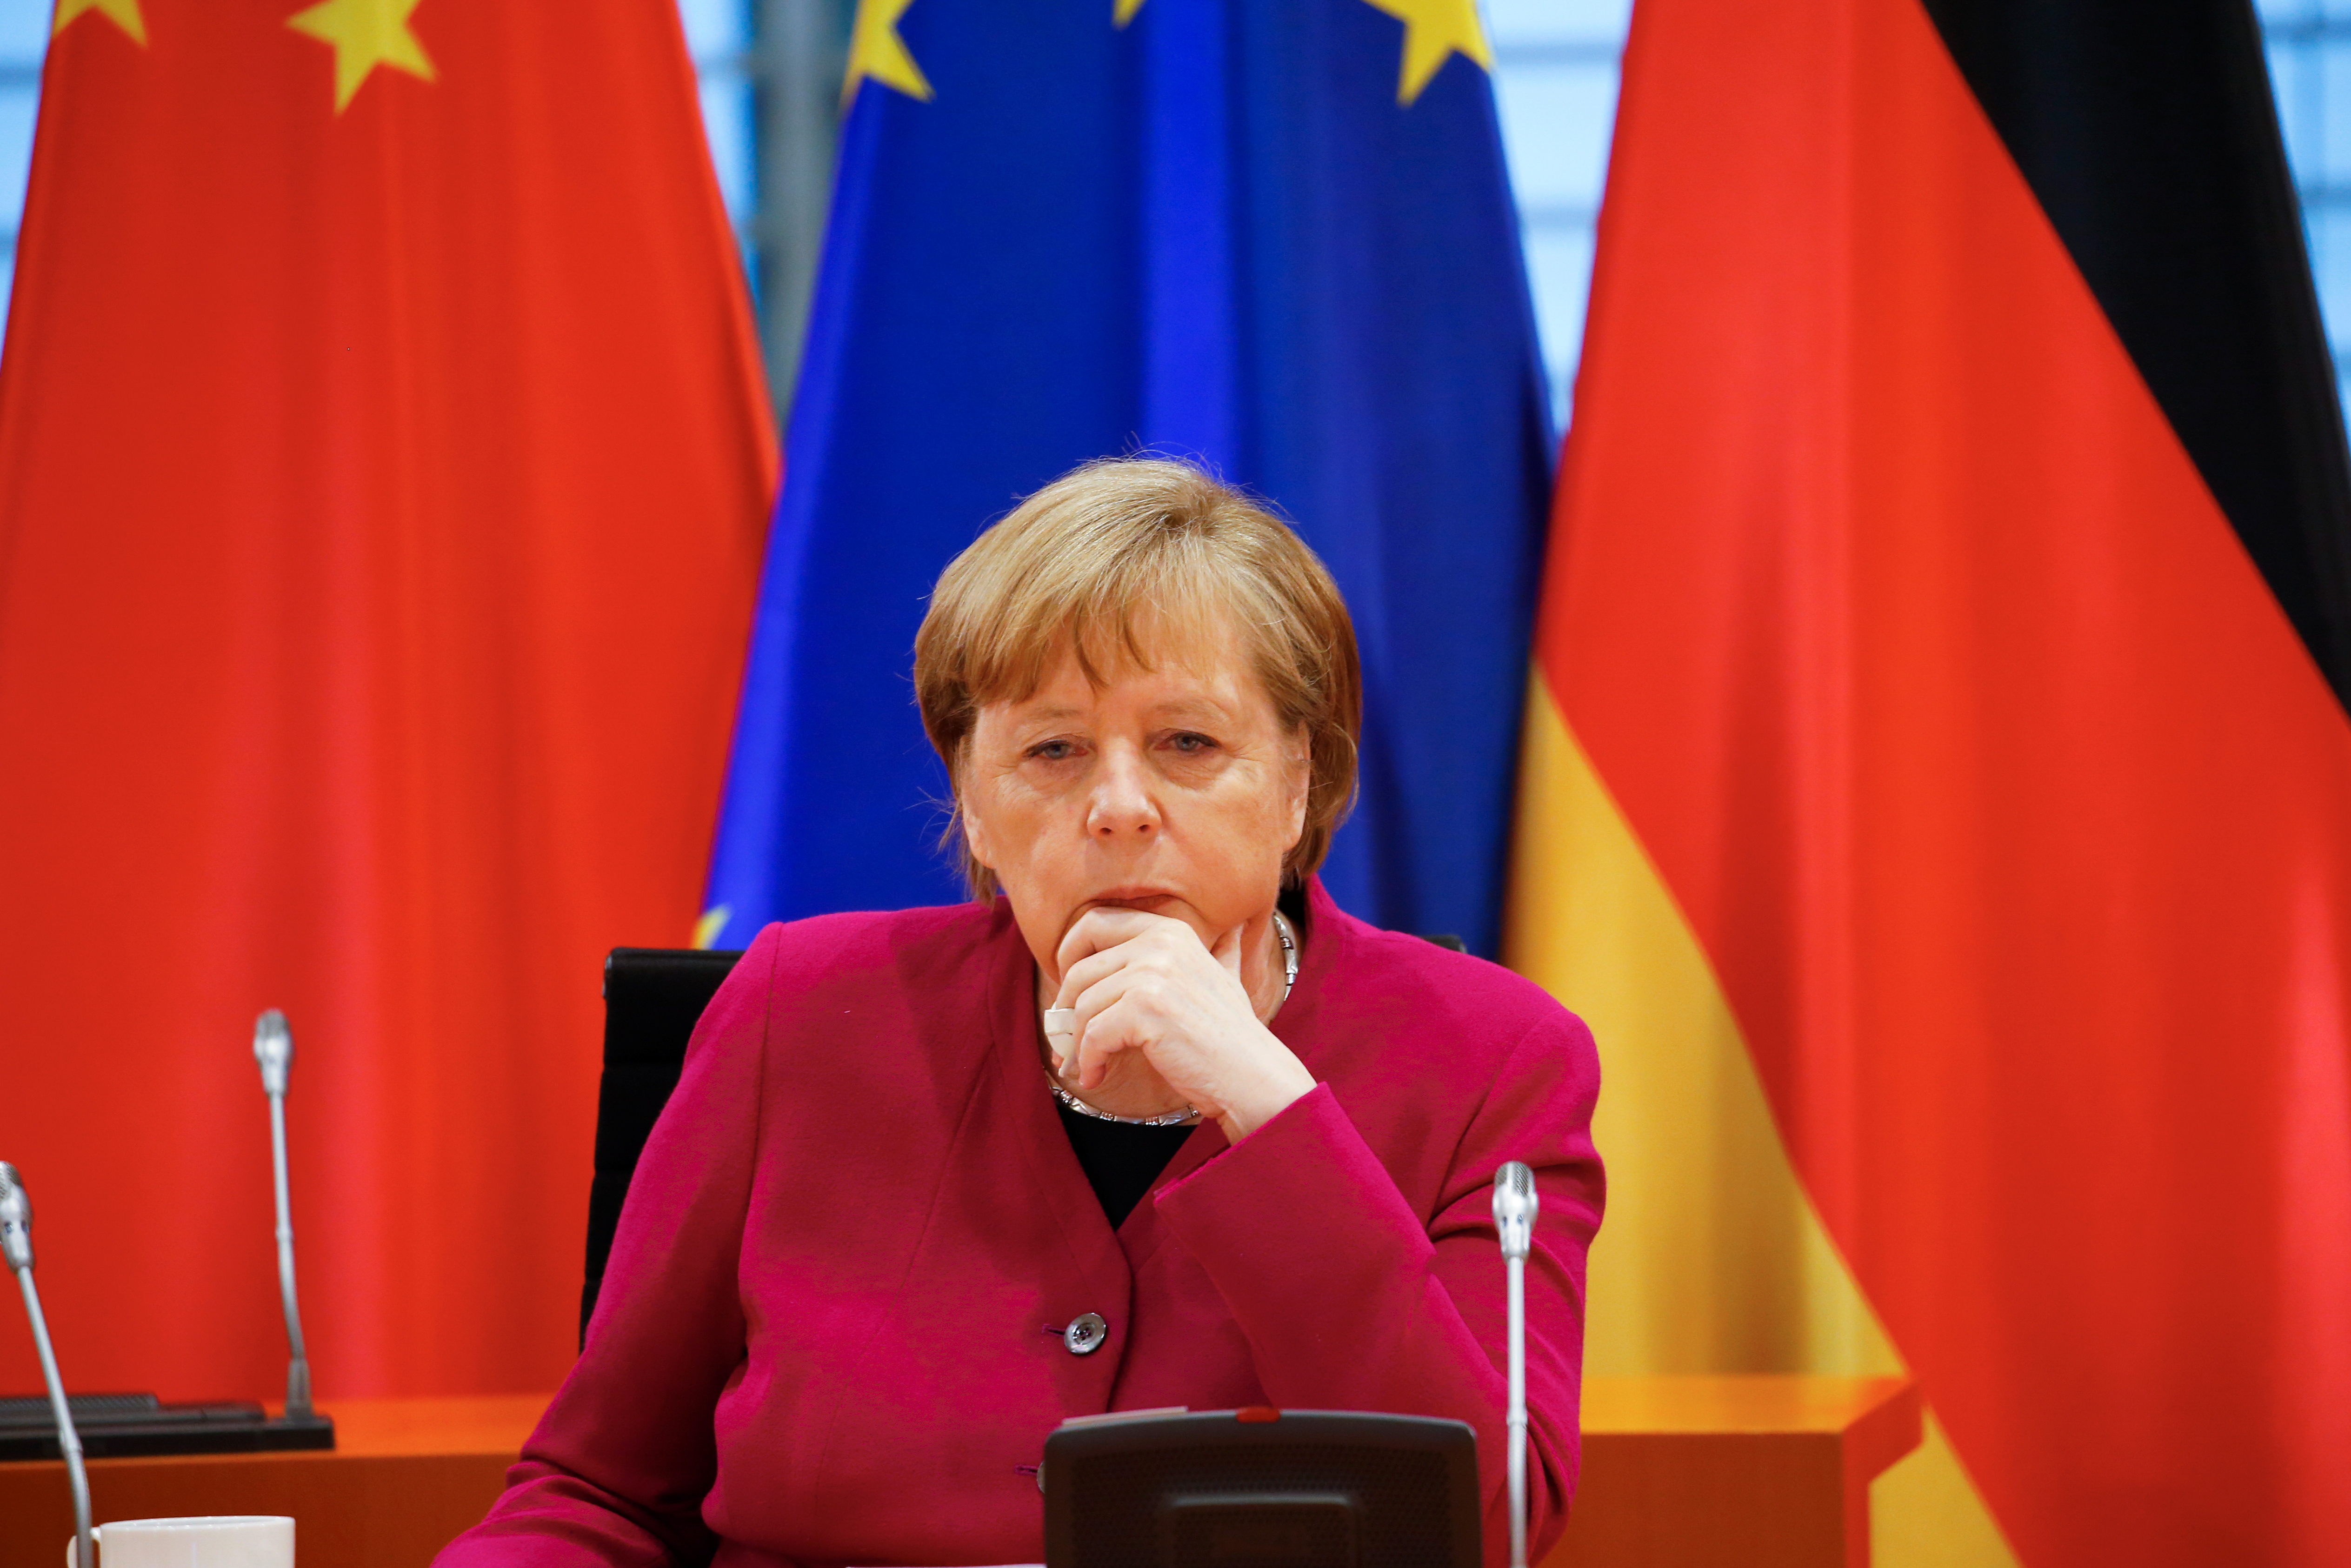 German Chancellor Angela Merkel attends virtual talks as part of the Sixth German-Chinese Government Consultations, in Berlin, Germany April 28, 2021. REUTERS/Michele Tantussi/Pool